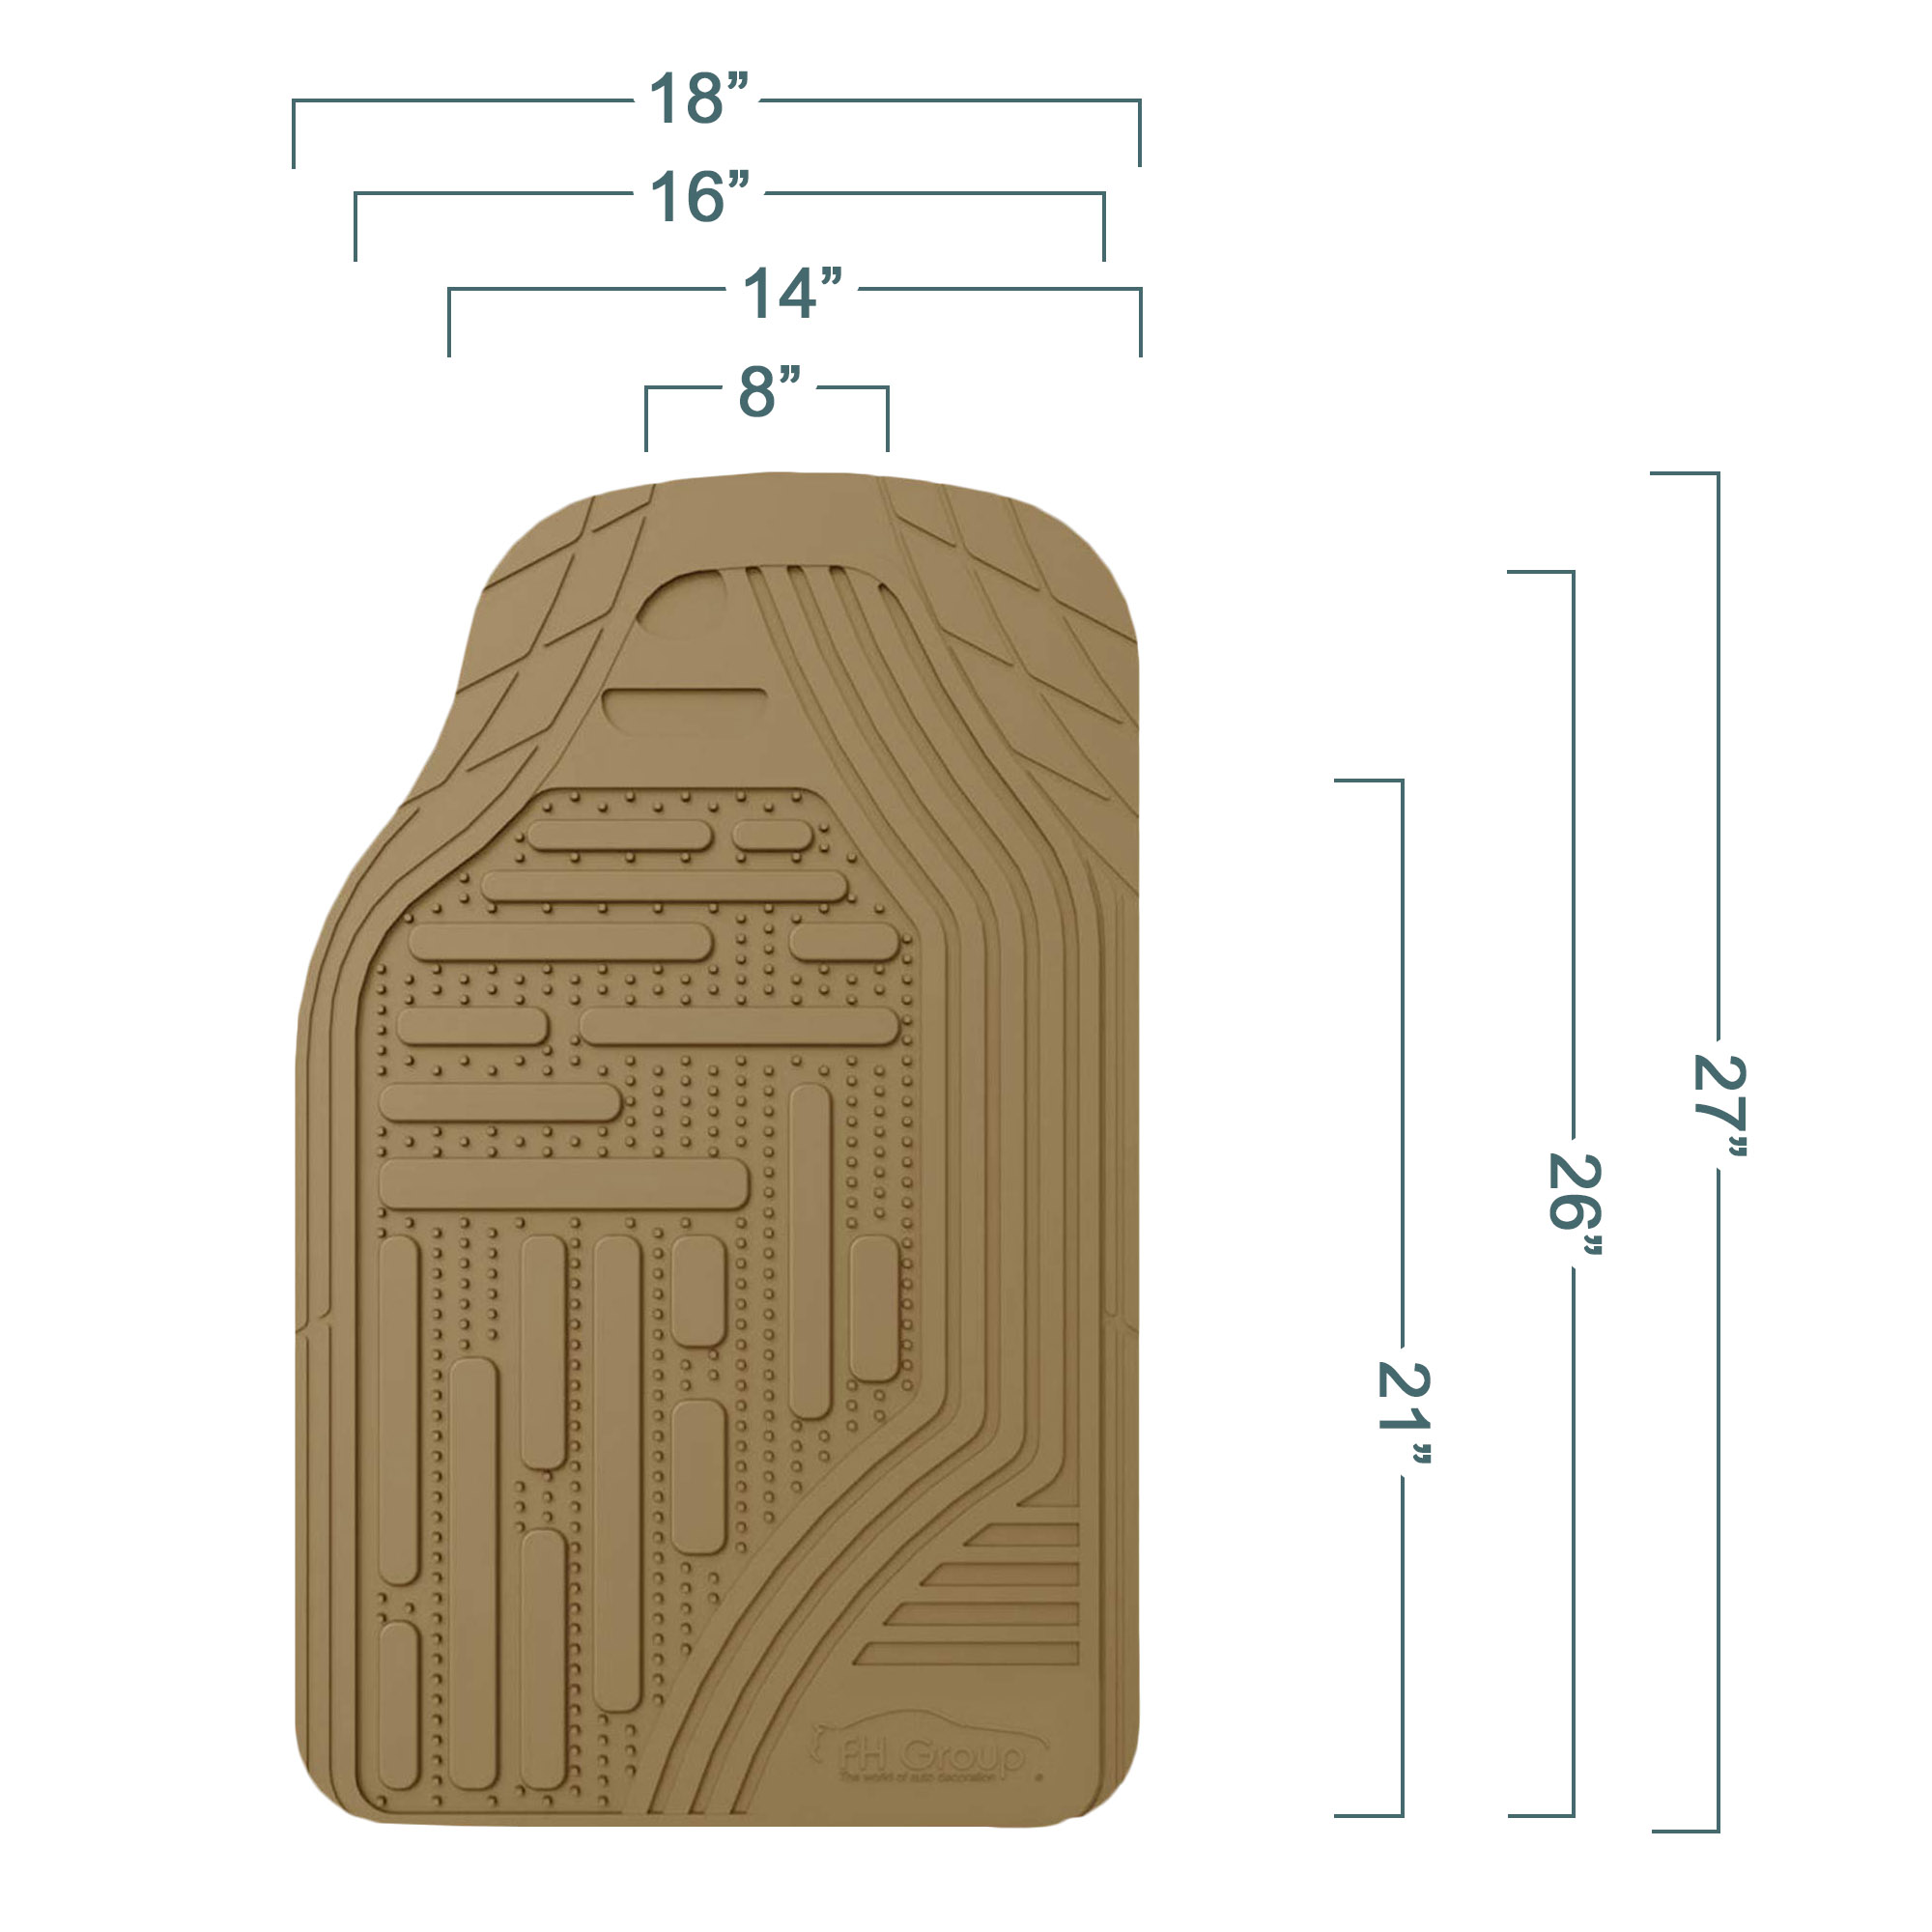 Which Type Of Floor Mats Do You Need? F11322BEIGE FRONT measurements